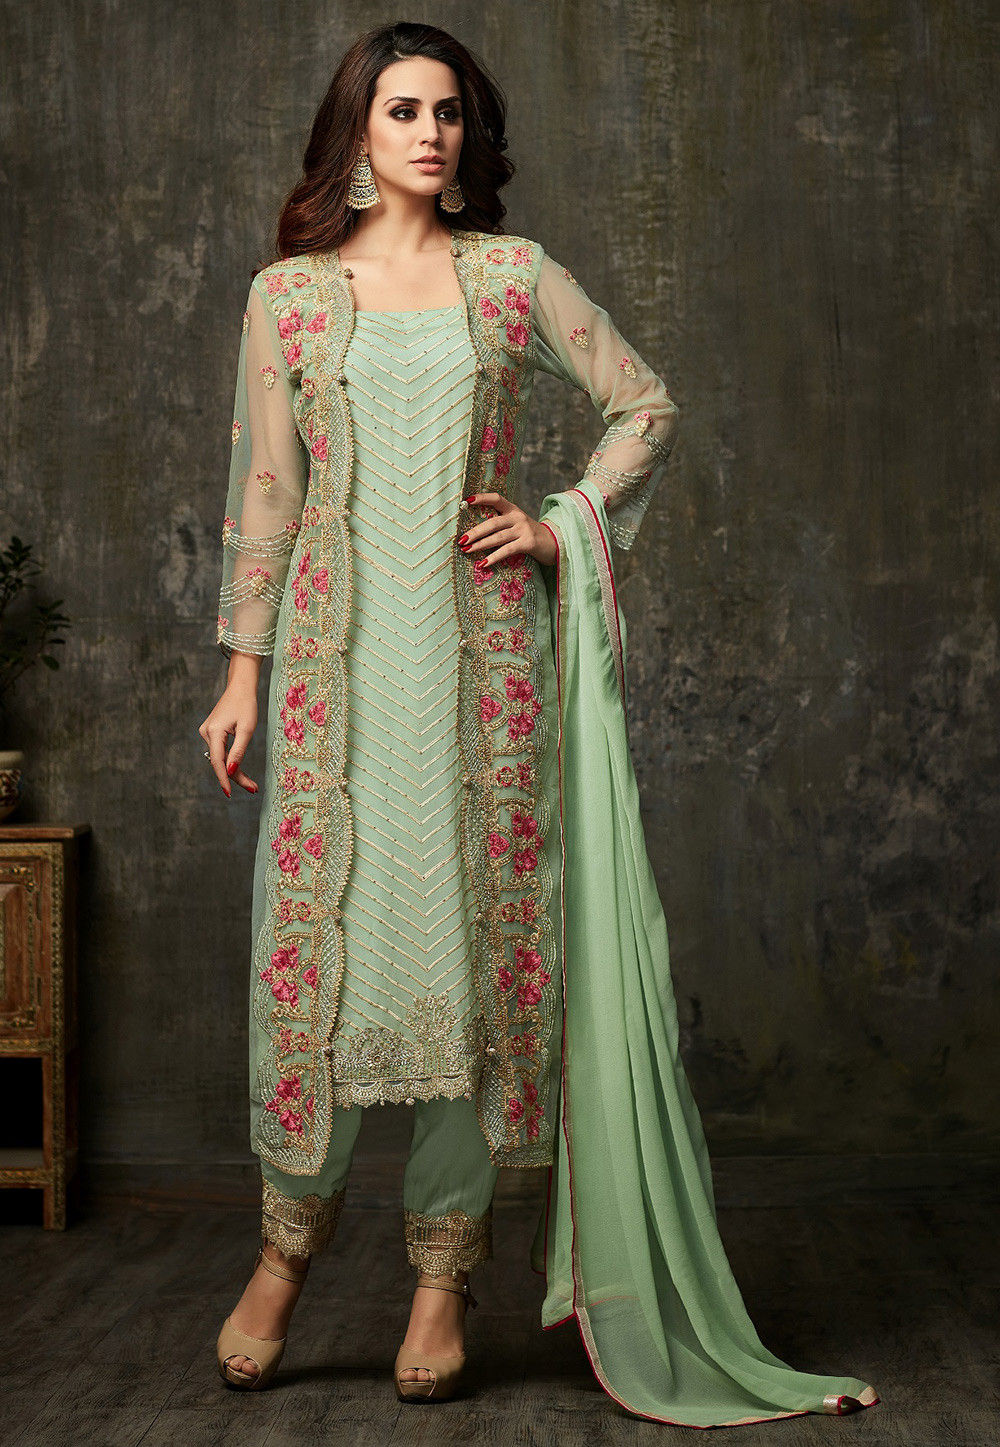 026bb4623 Embroidered Georgette Pakistani Suit in Pastel Green   KCH1128